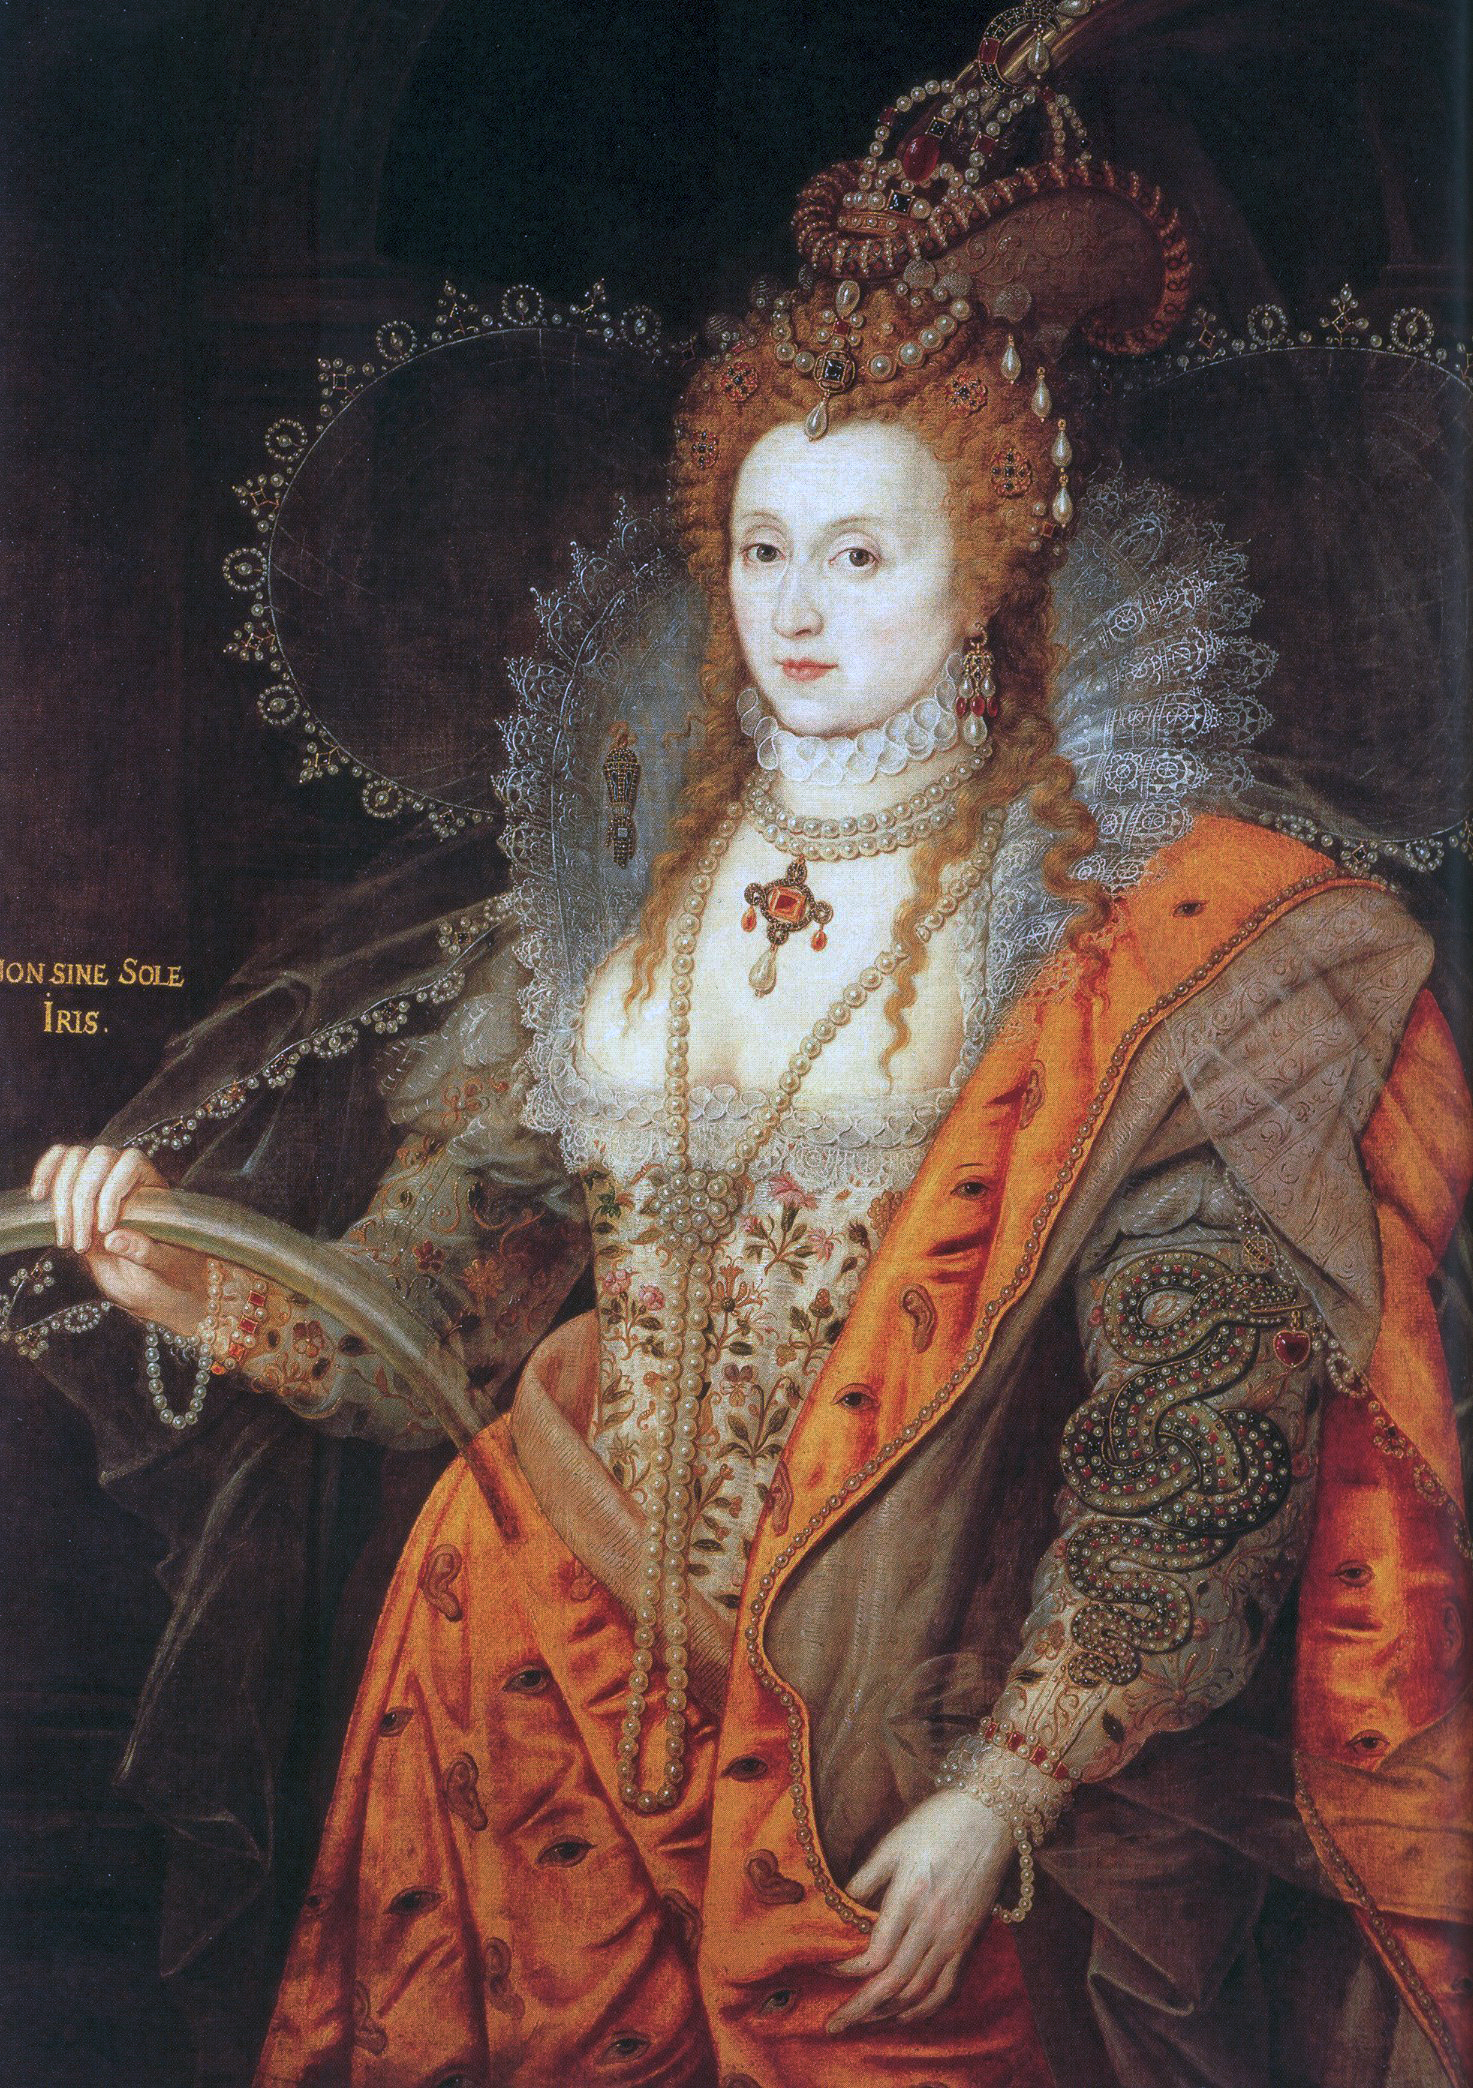 """Dressed to excess: She may have been the Virgin Queen but Elizabeth I had no qualms about displaying her womanly charms in this allegorical """"Rainbow Portrait,"""" 1600-02, oil on canvas. Hatfield House."""